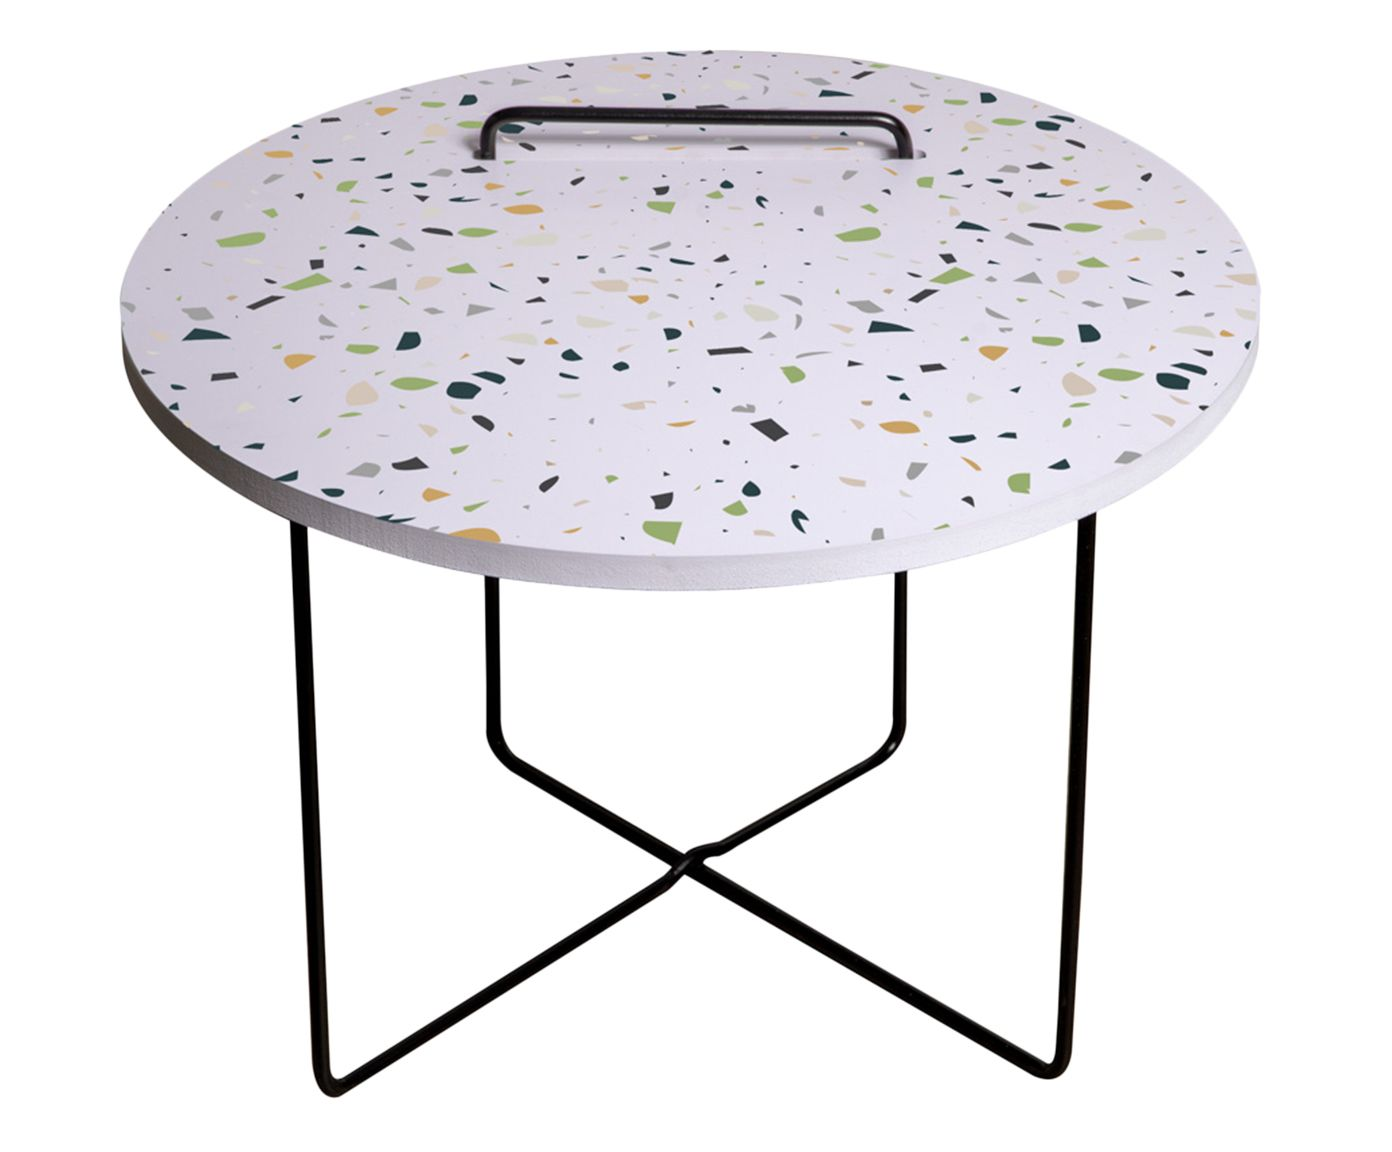 Mesa Lateral Tow Terrazzo Branca - 42X63cm   Westwing.com.br